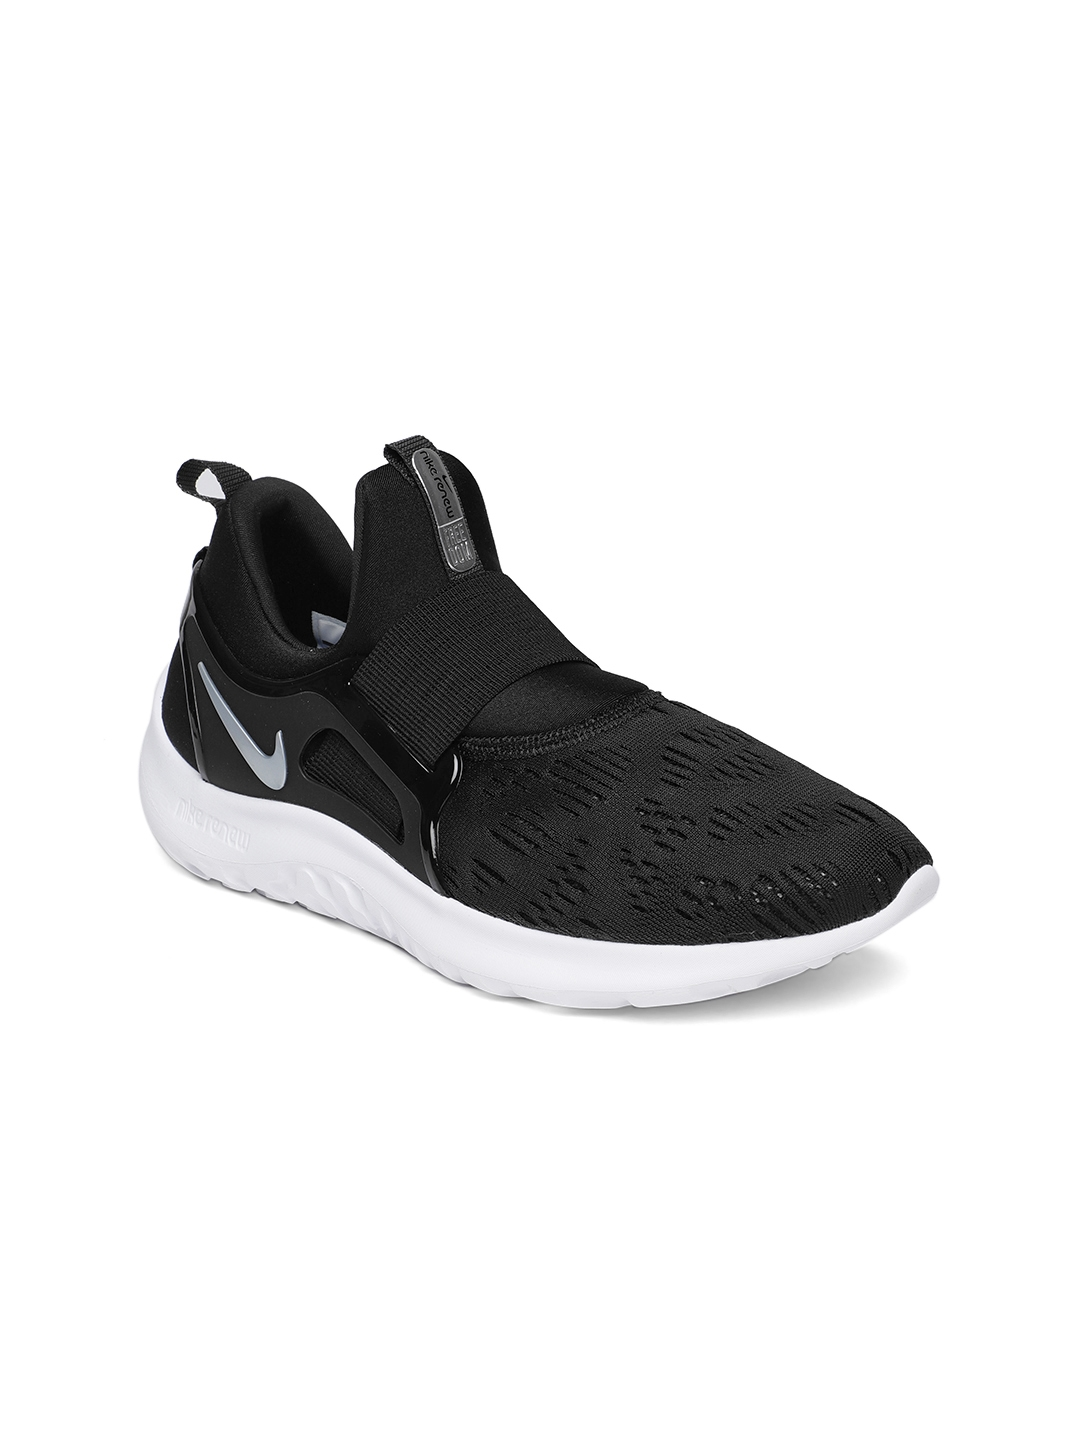 282005e0e94 Buy Nike Women Black Renew Freedom Running Shoes - Sports Shoes for ...